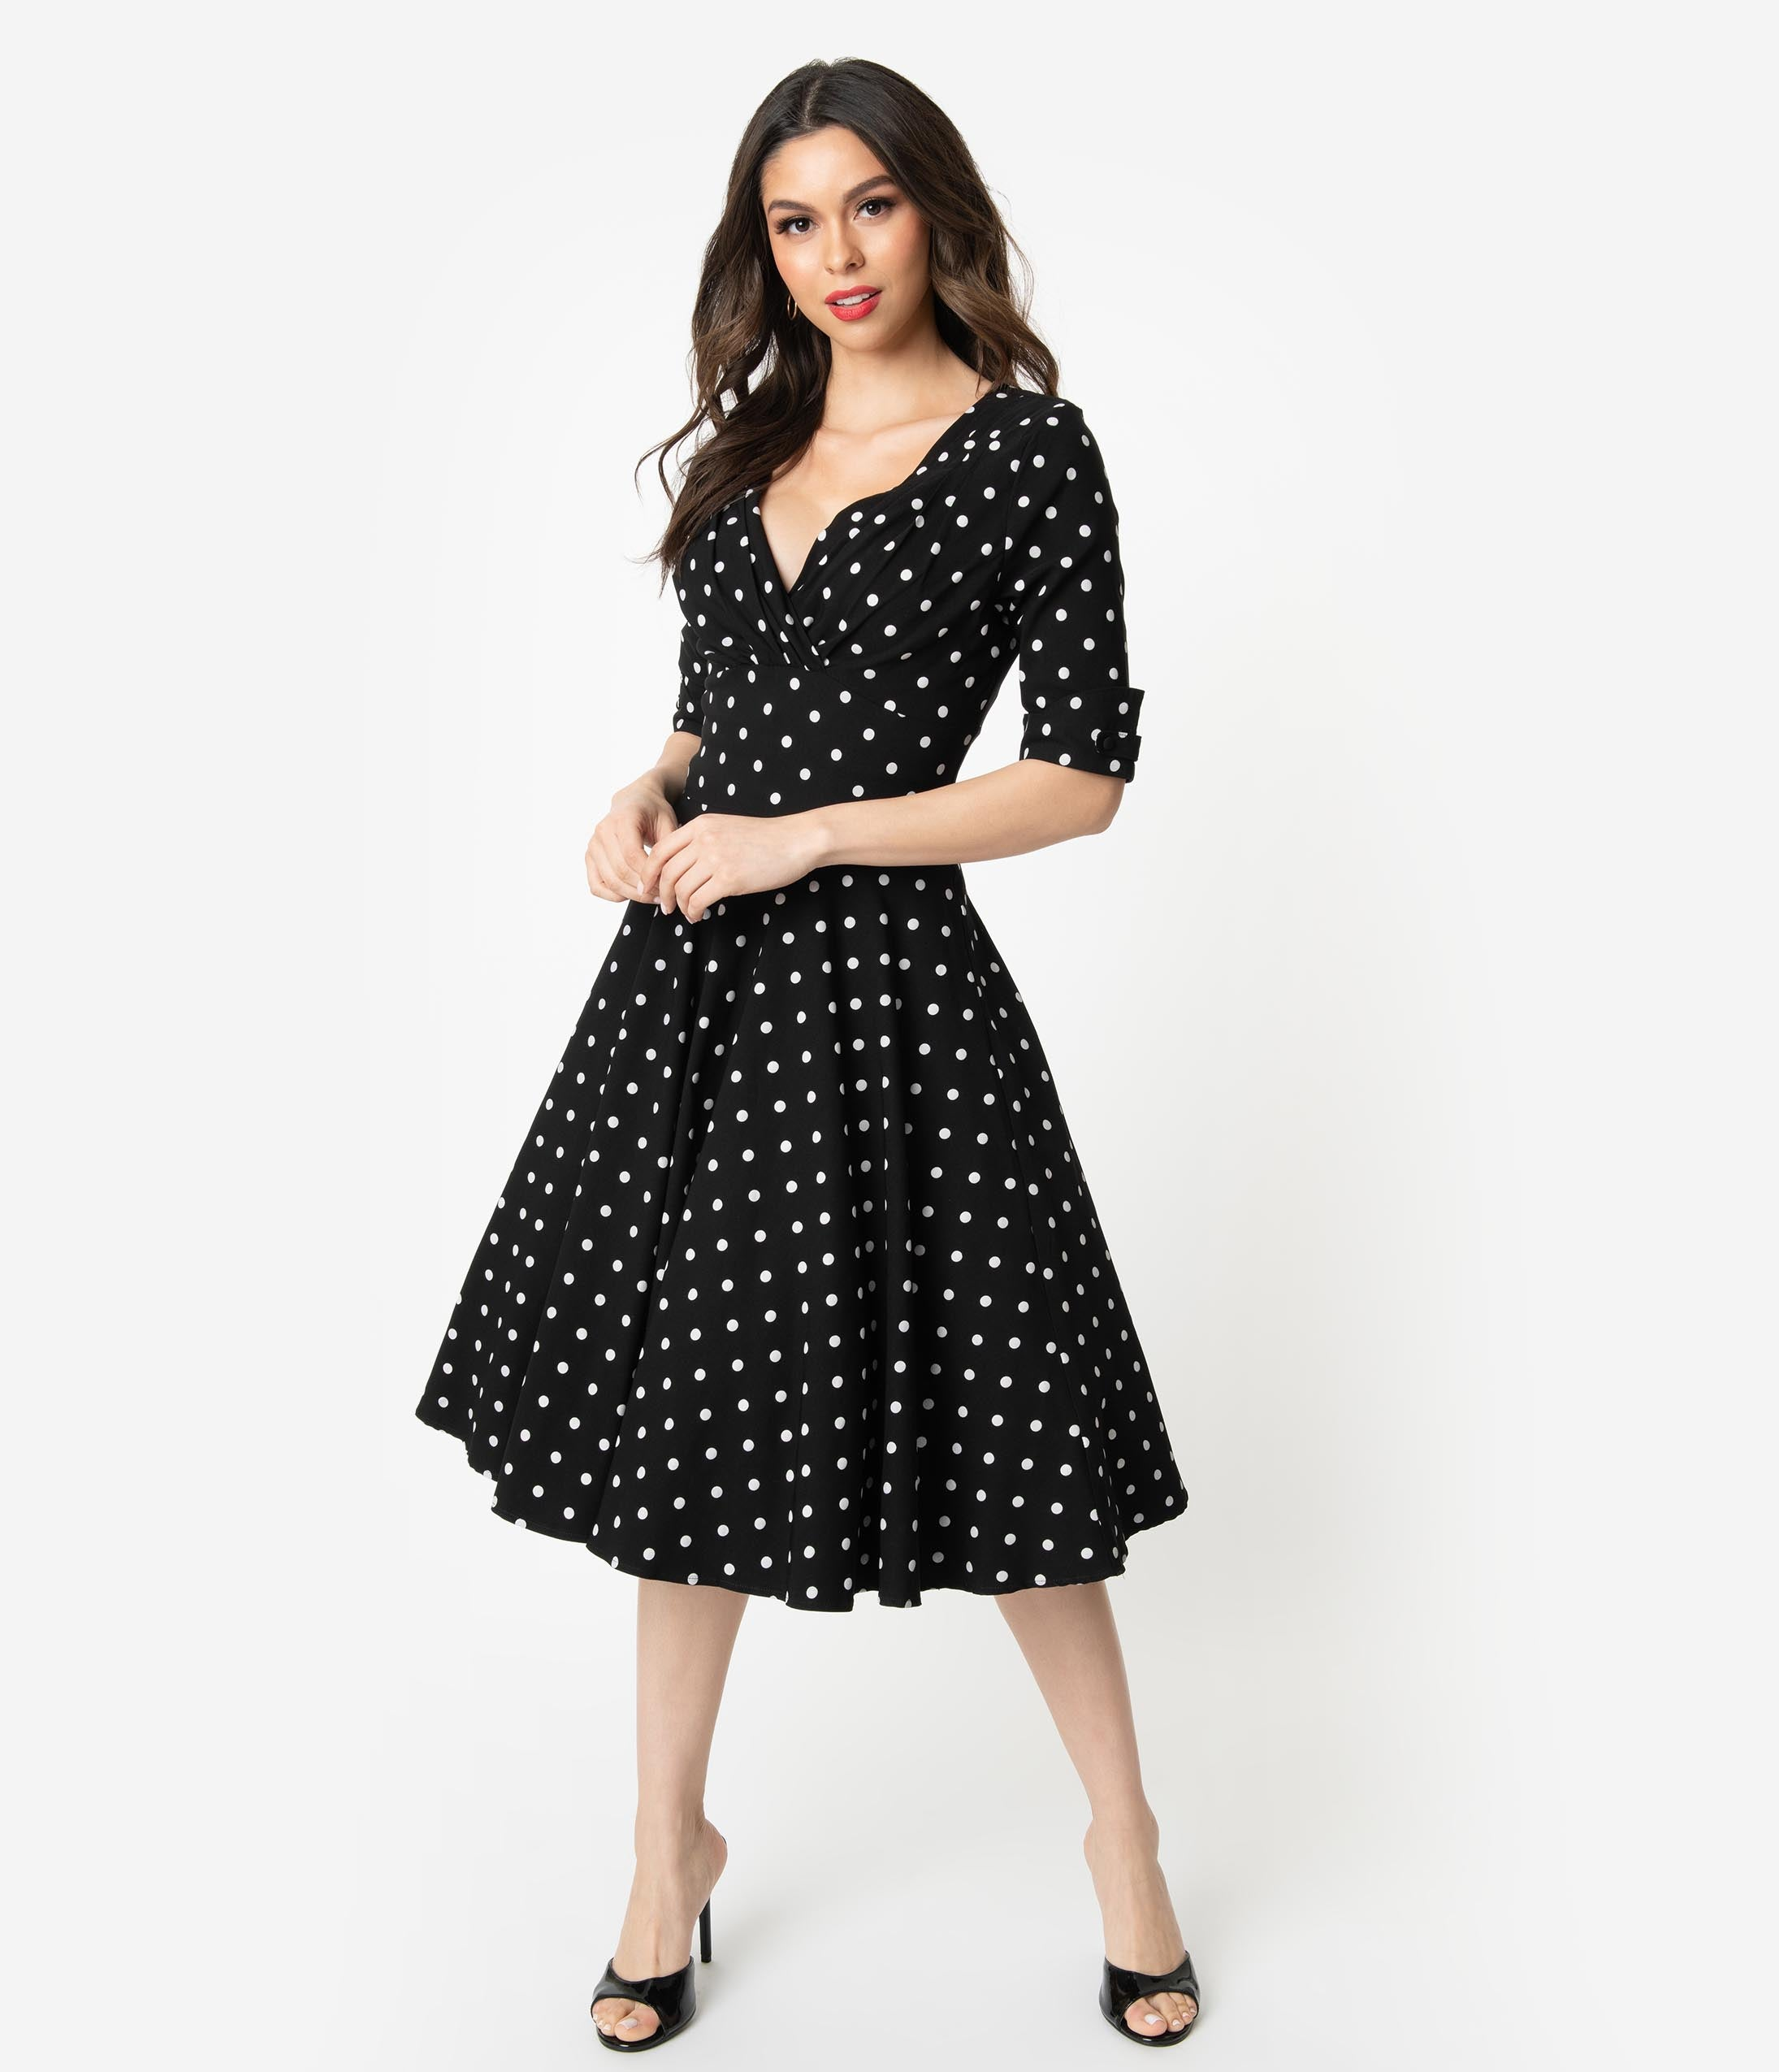 500 Vintage Style Dresses for Sale | Vintage Inspired Dresses Unique Vintage 1950S Black  White Polka Dot Delores Swing Dress With Sleeves $92.00 AT vintagedancer.com